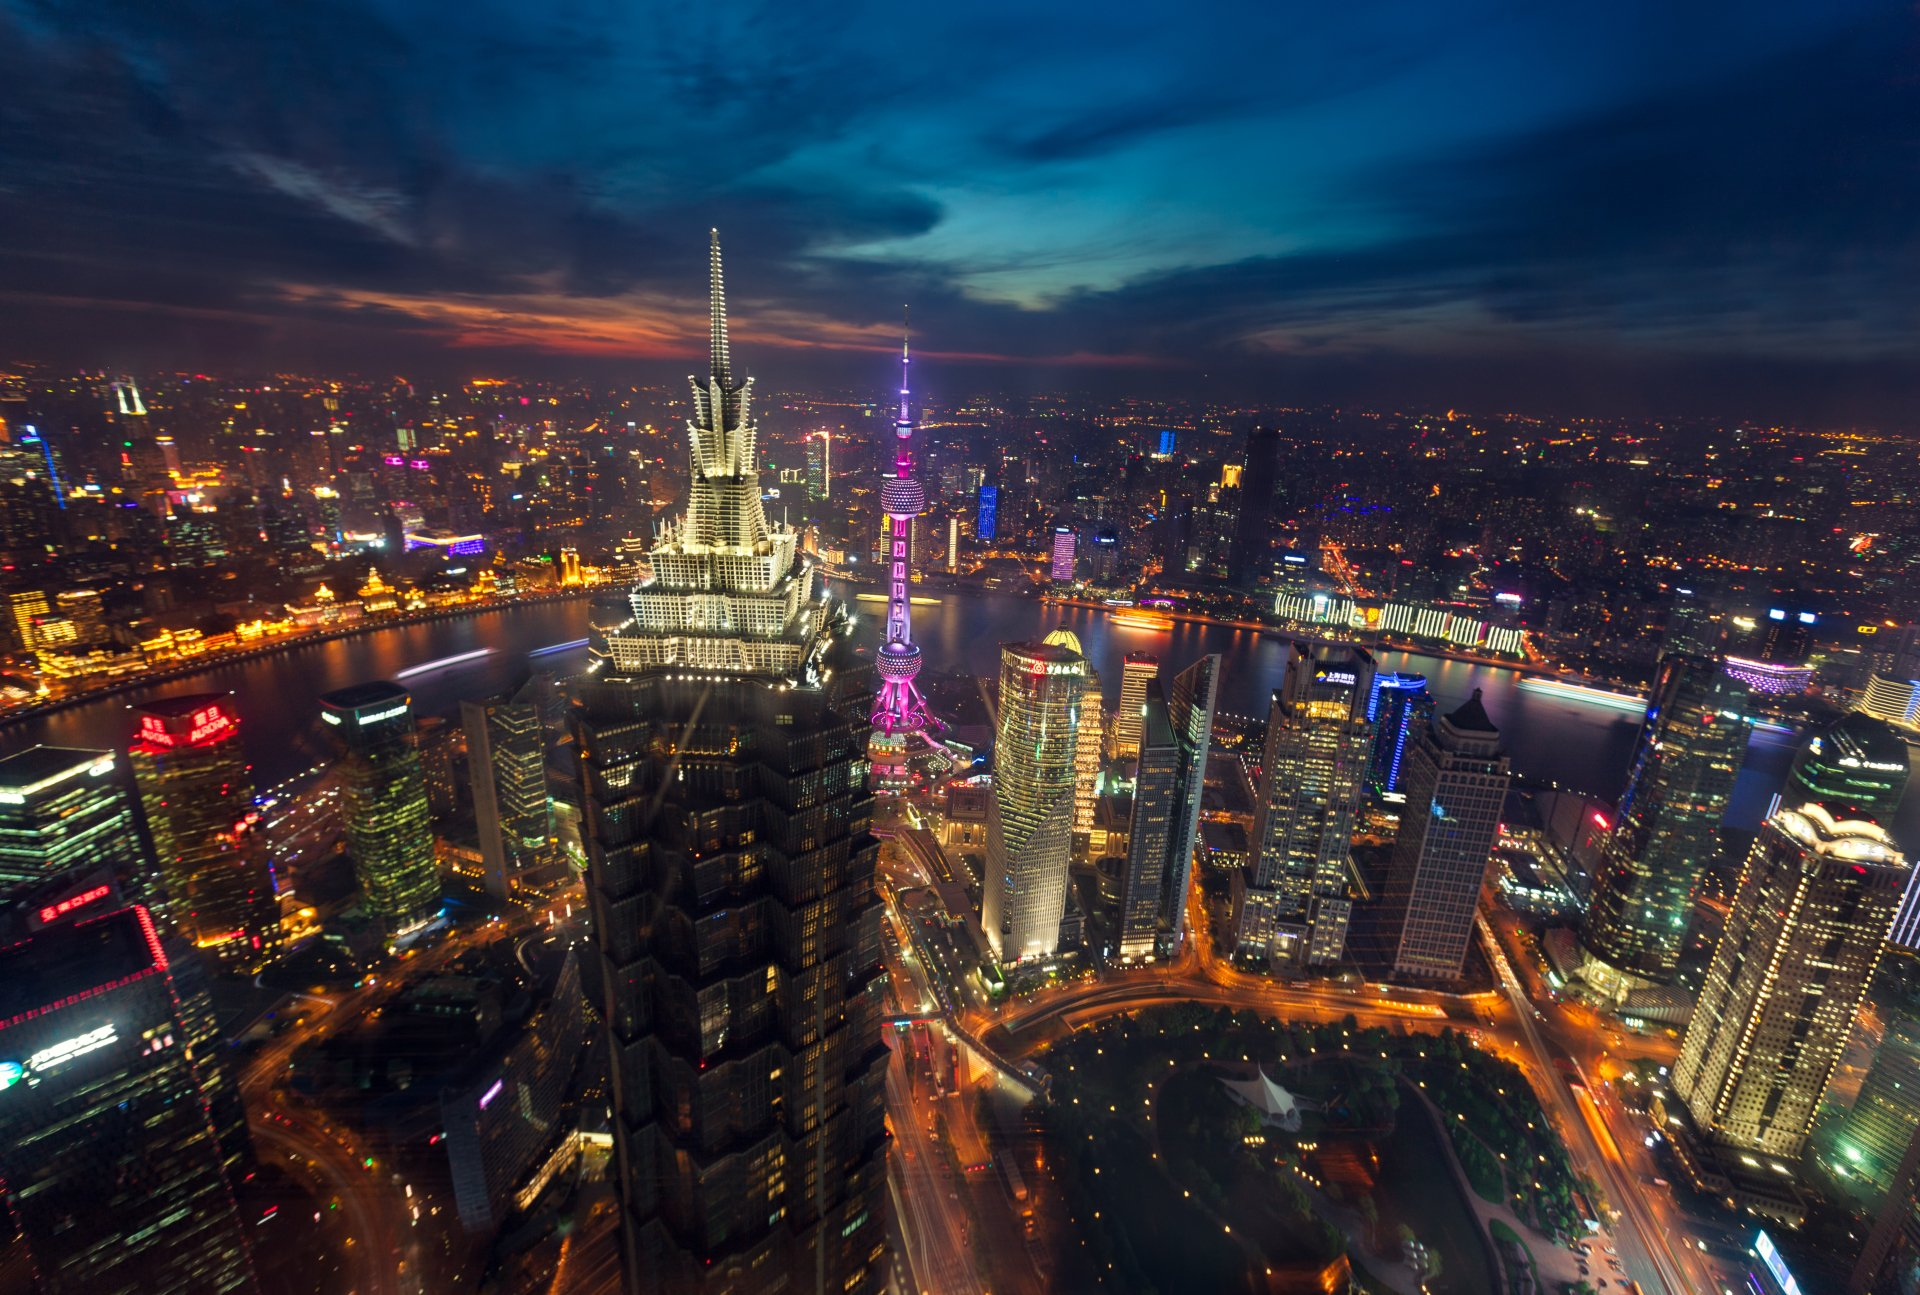 Shanghai 5k retina ultra hd wallpaper and background image 5649x3809 id 595902 - Shanghai skyline wallpaper ...